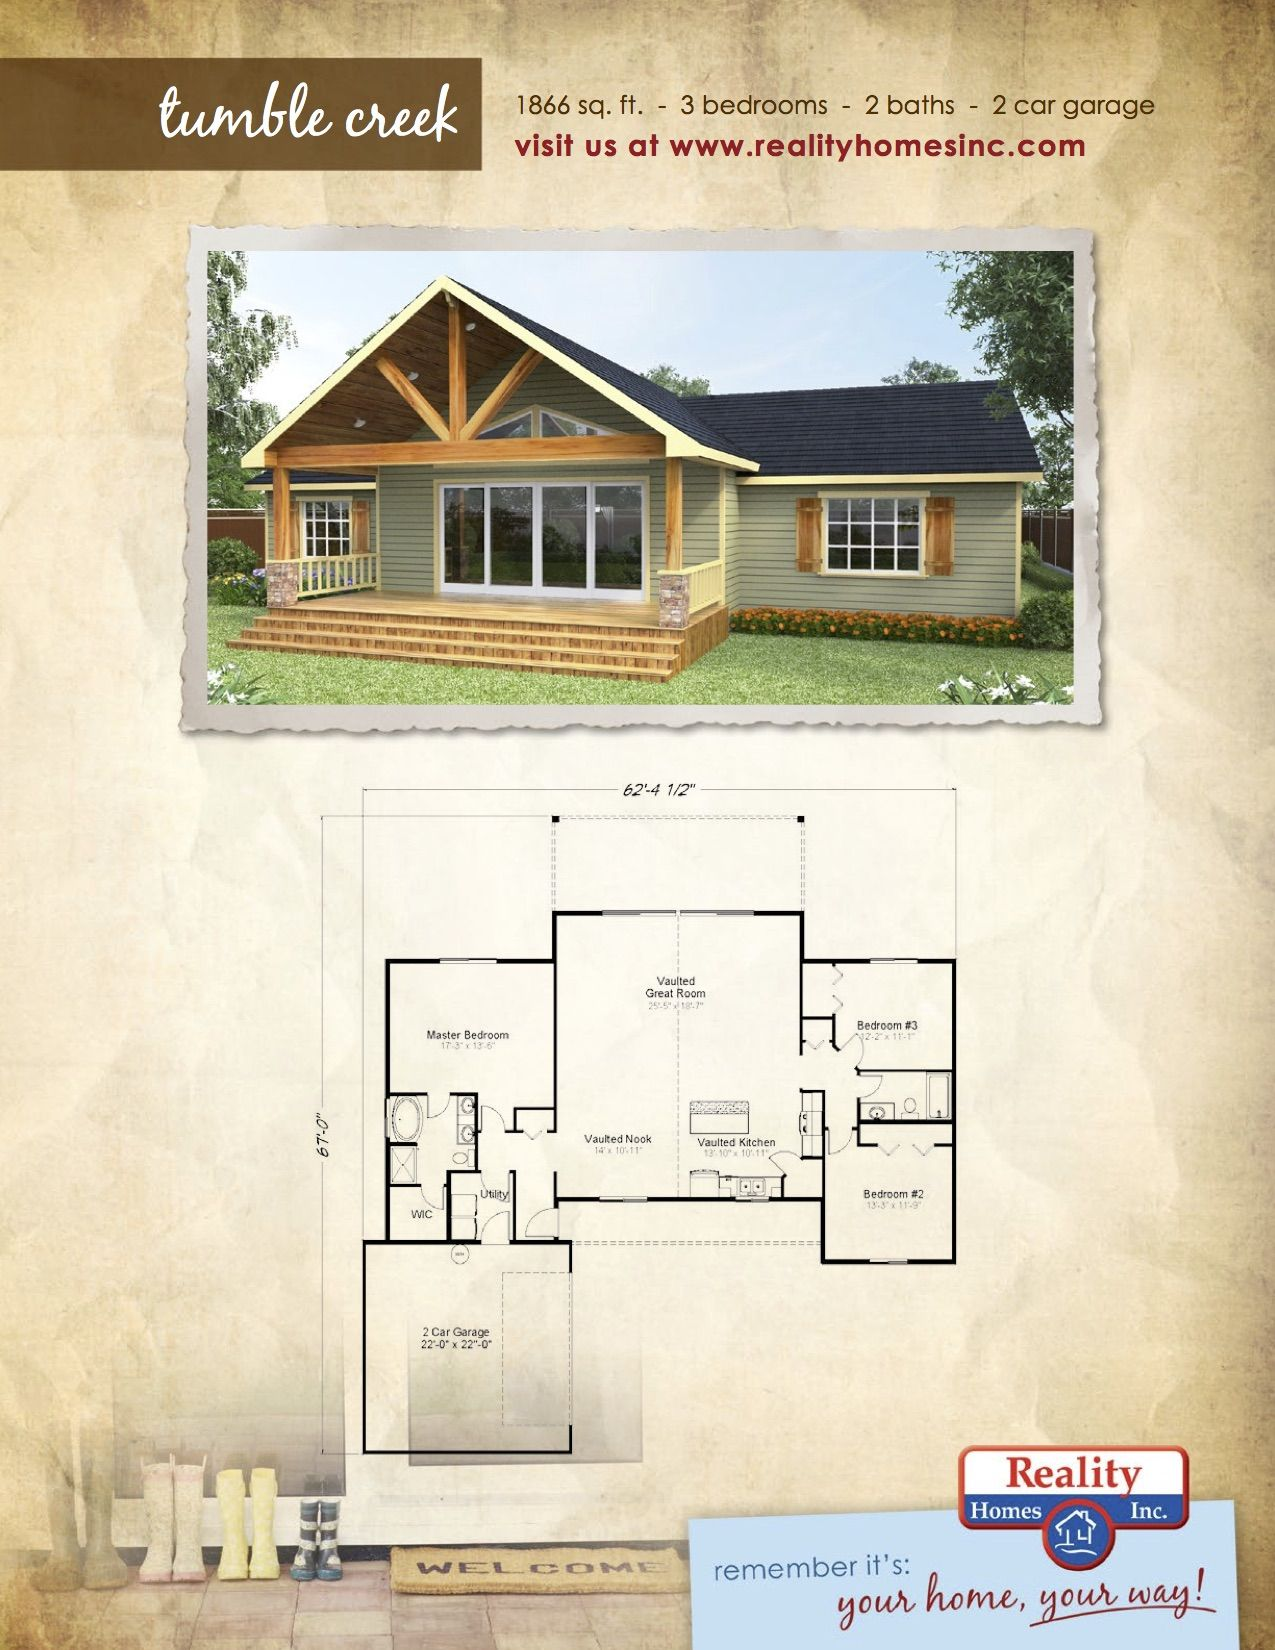 Inexpensive Homes Build Cheapest House Build Build Dream